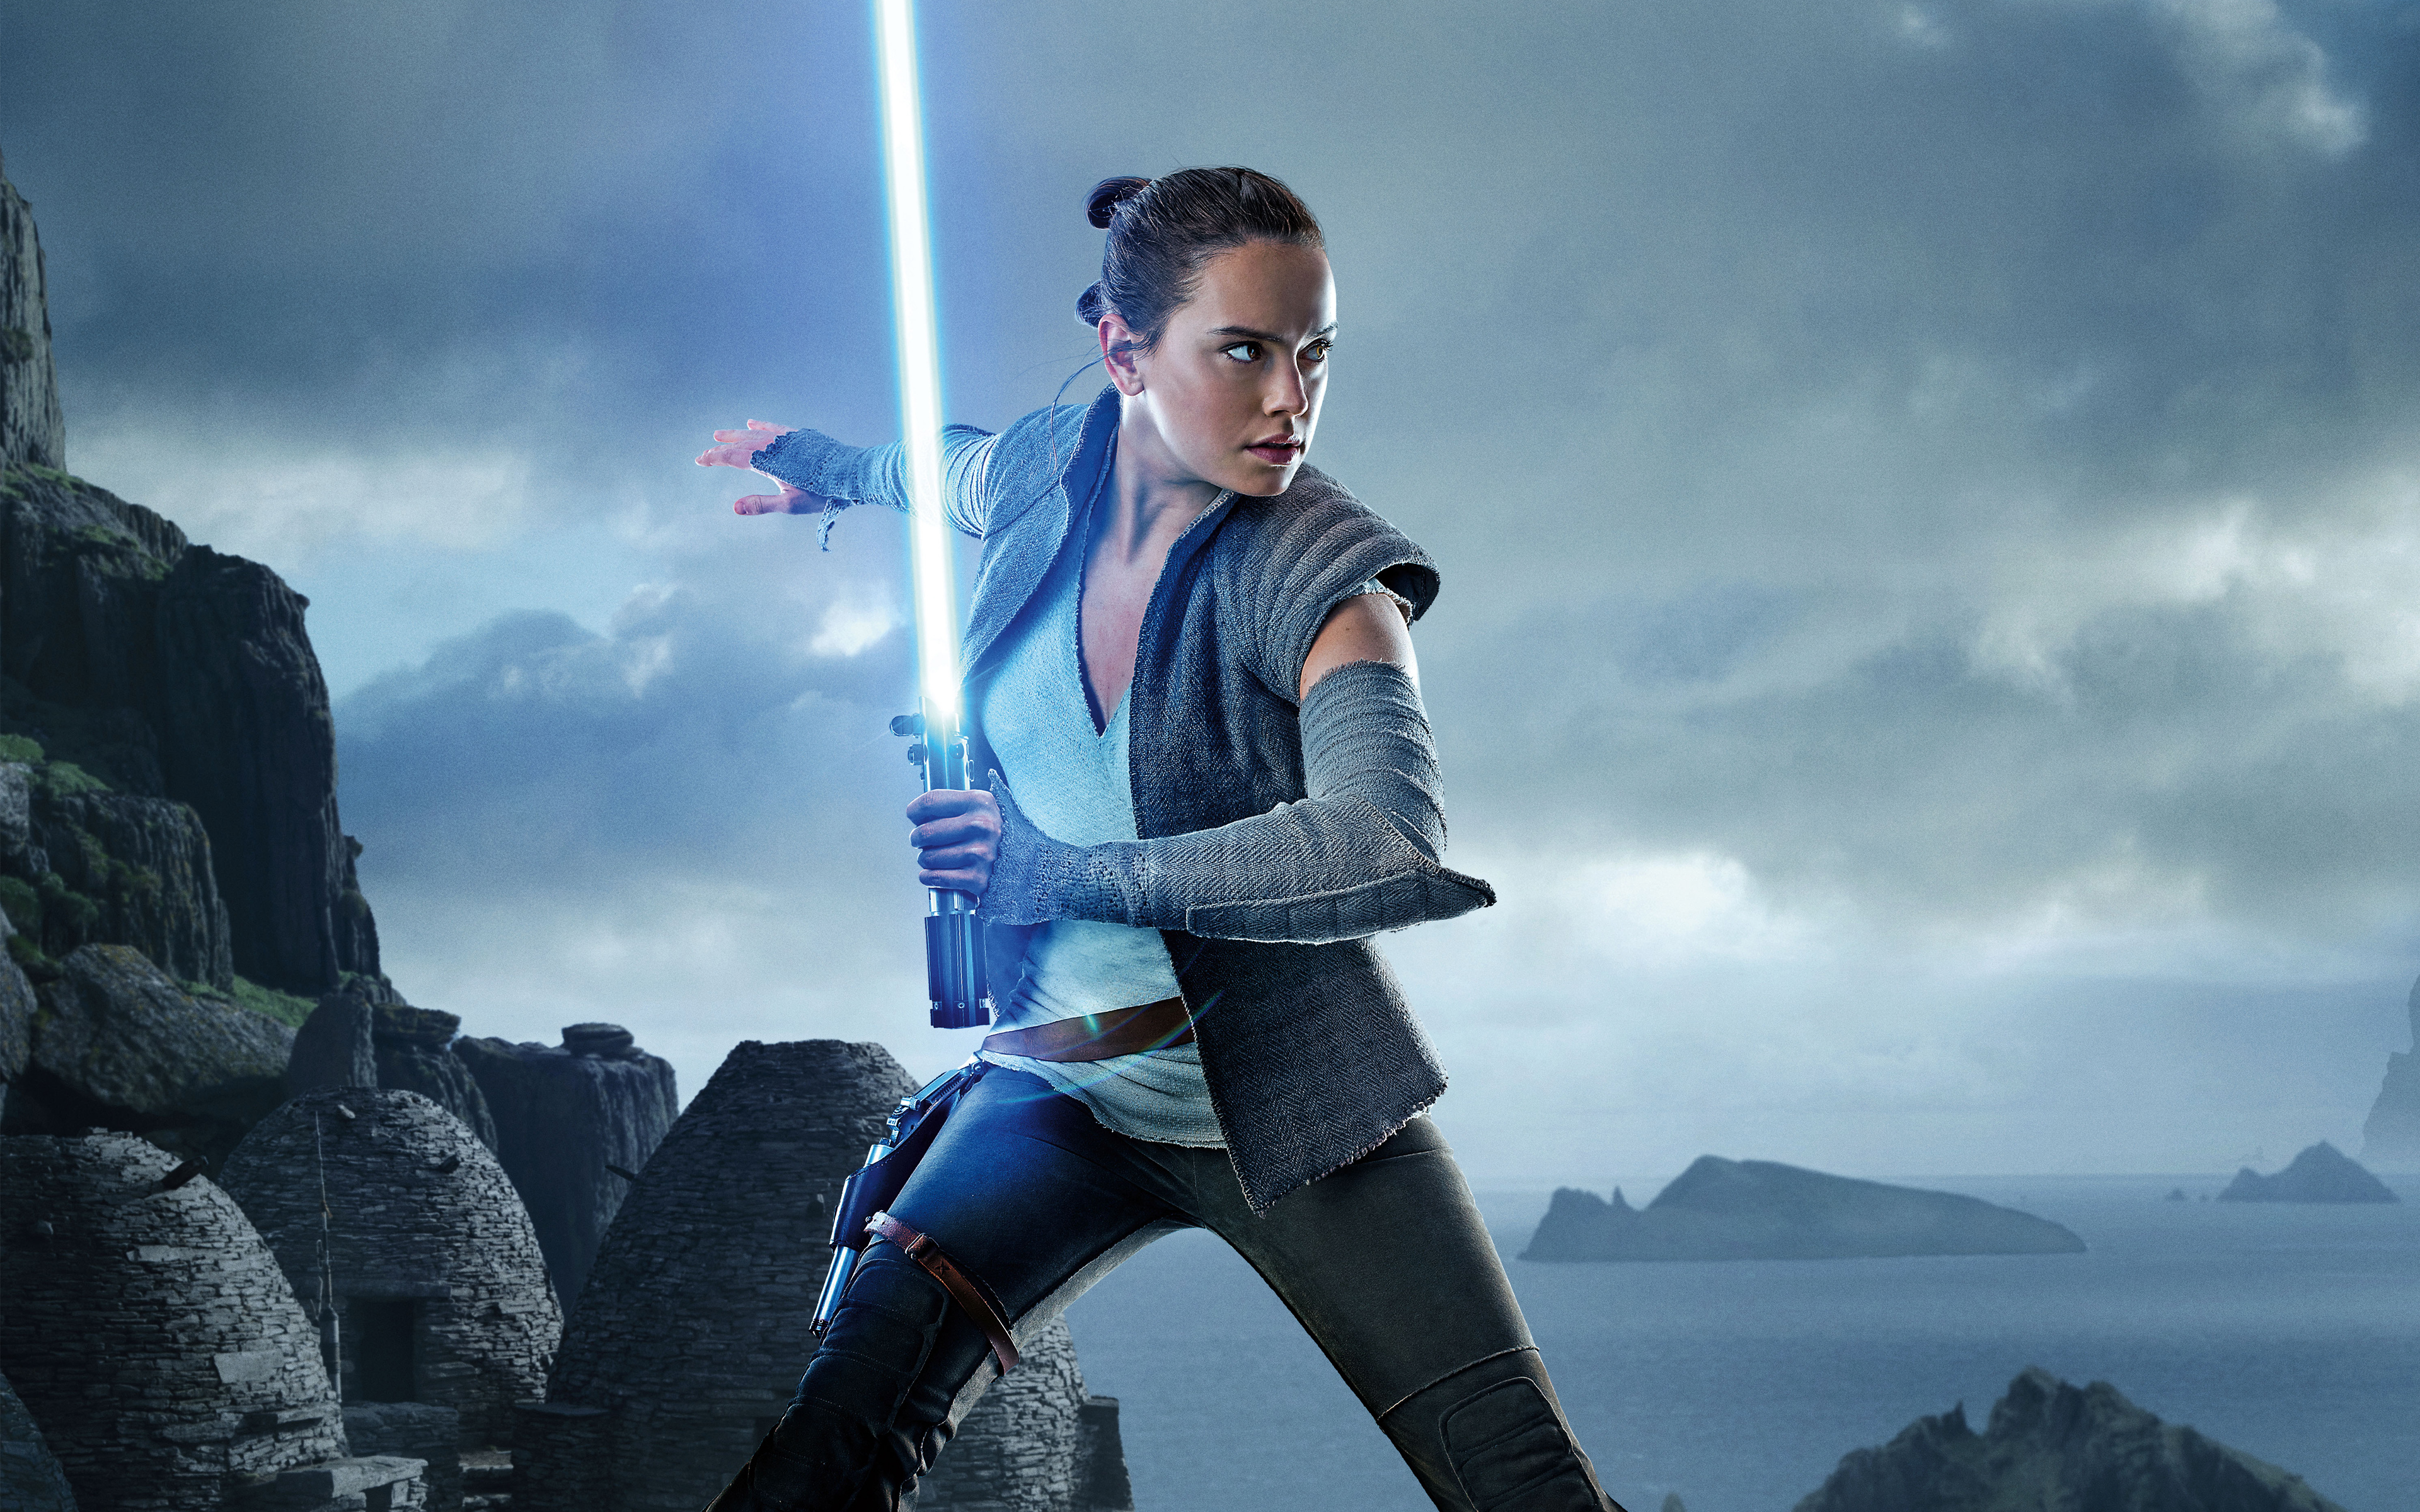 Wallpaper 4k Daisy Ridley As Rey Star Wars The Last Jedi 5k Daisy Jedi Last One Rey Ridley Star The Wars